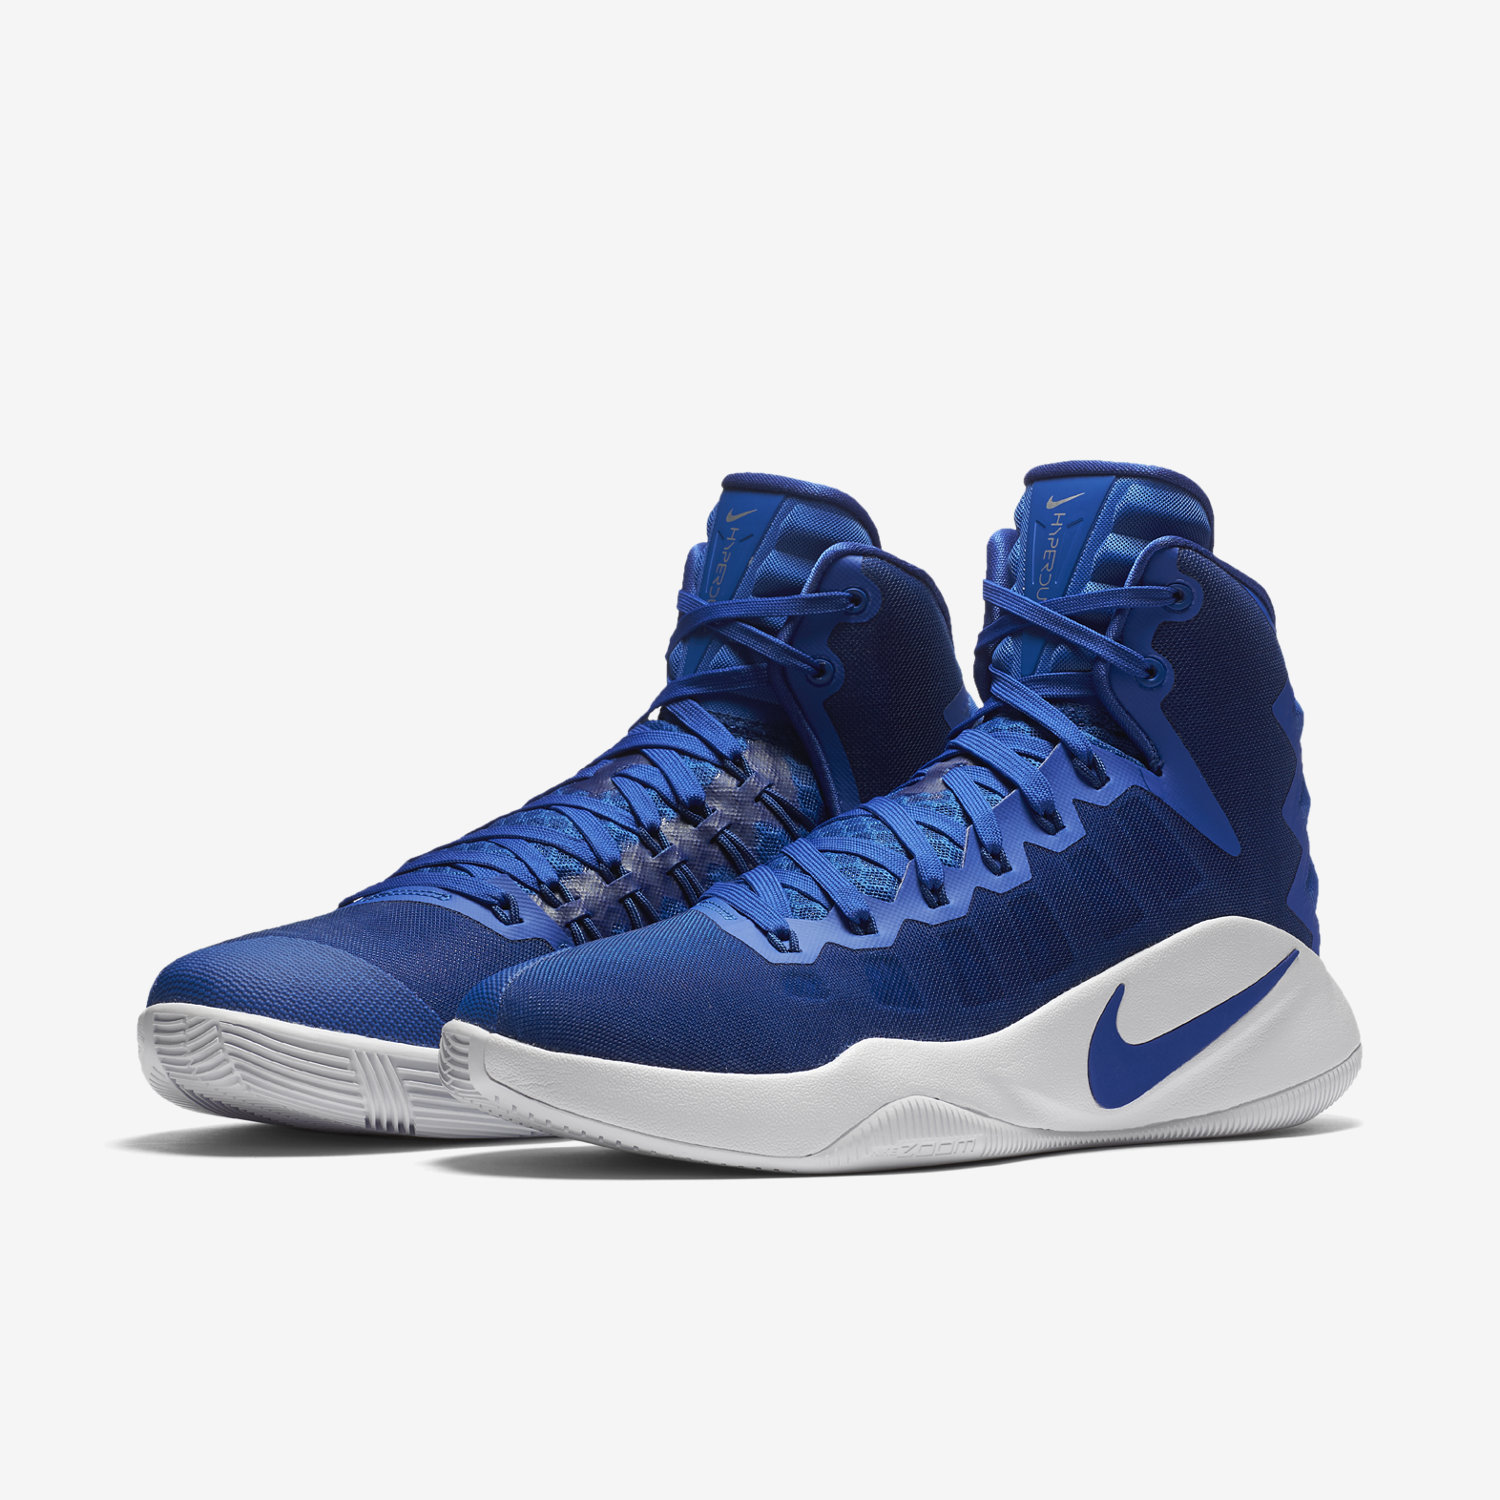 Nike basketball shoes 2014 hyperdunk